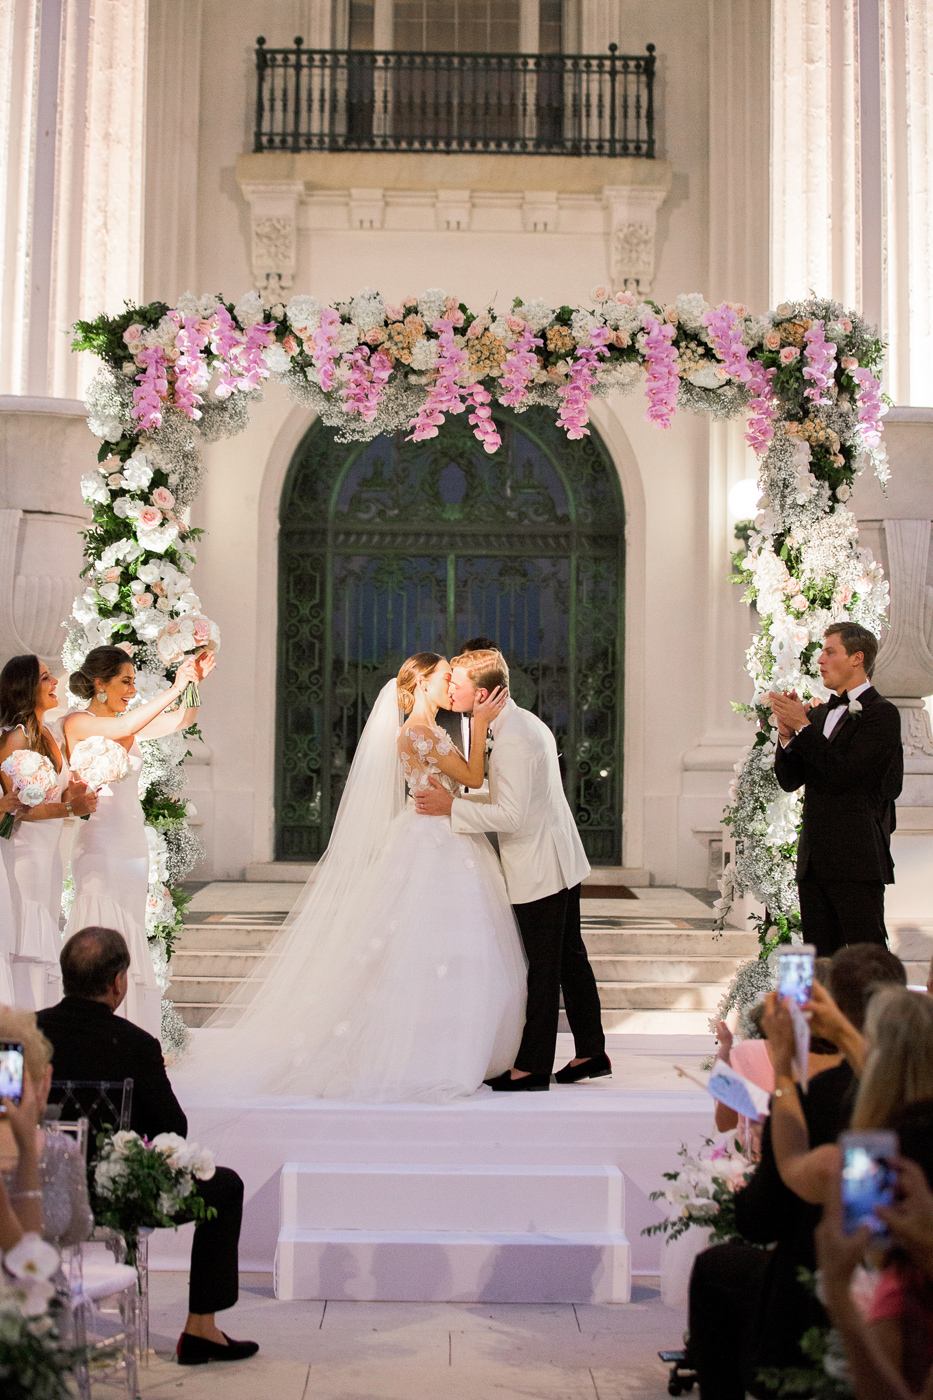 JZ Events-Jennifer Zabinski-Destination Wedding Planner-Palm Beach Wedding-The Flagler Museum-Palm Beach Perfection-0231